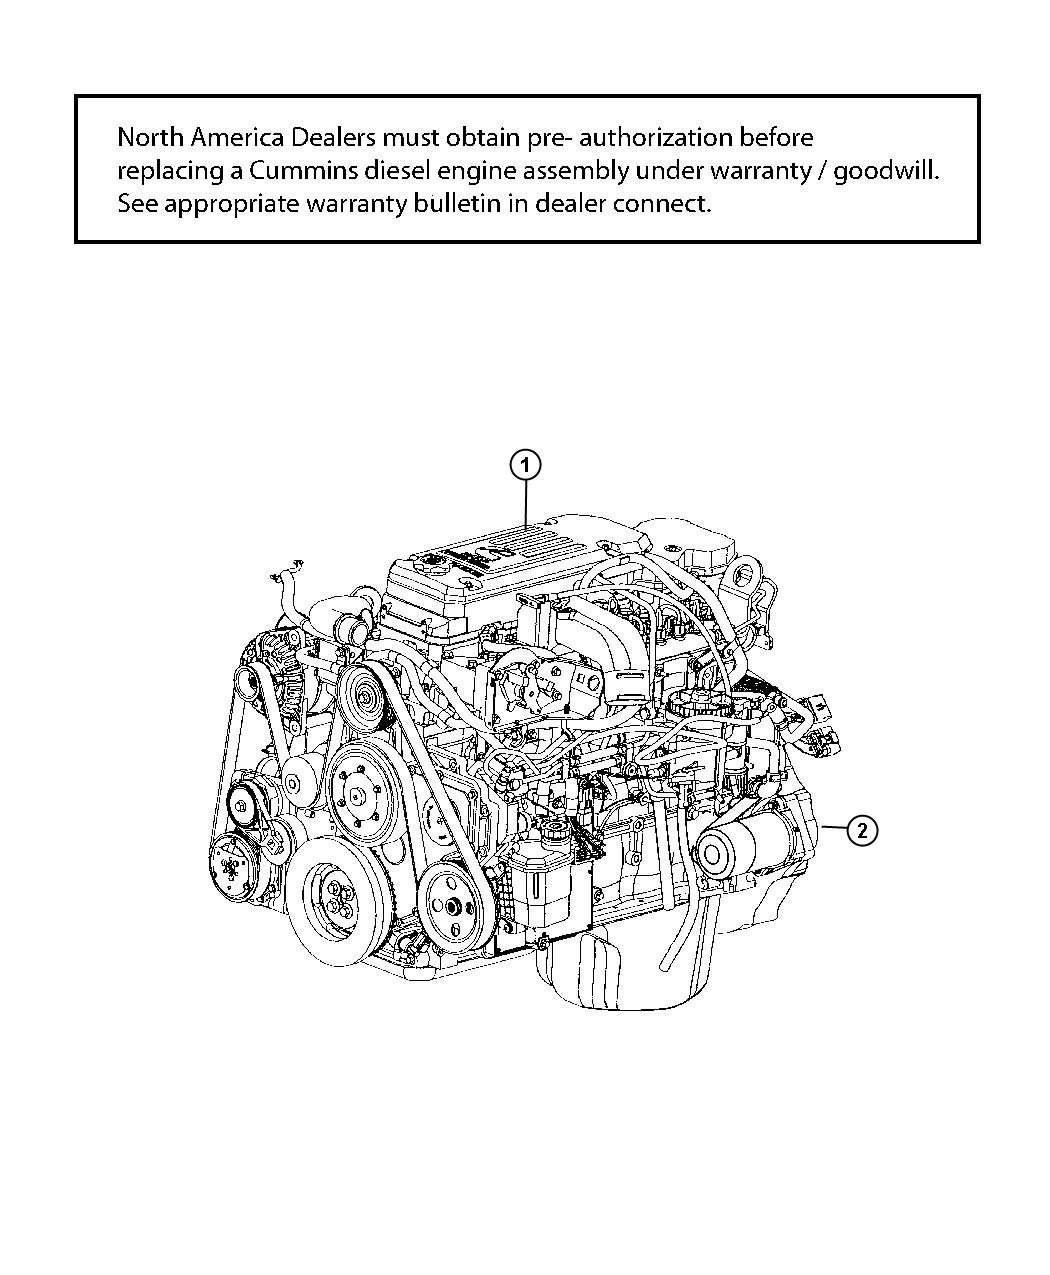 2012 Dodge Ram 3500 Engine  Complete  Remanufactured